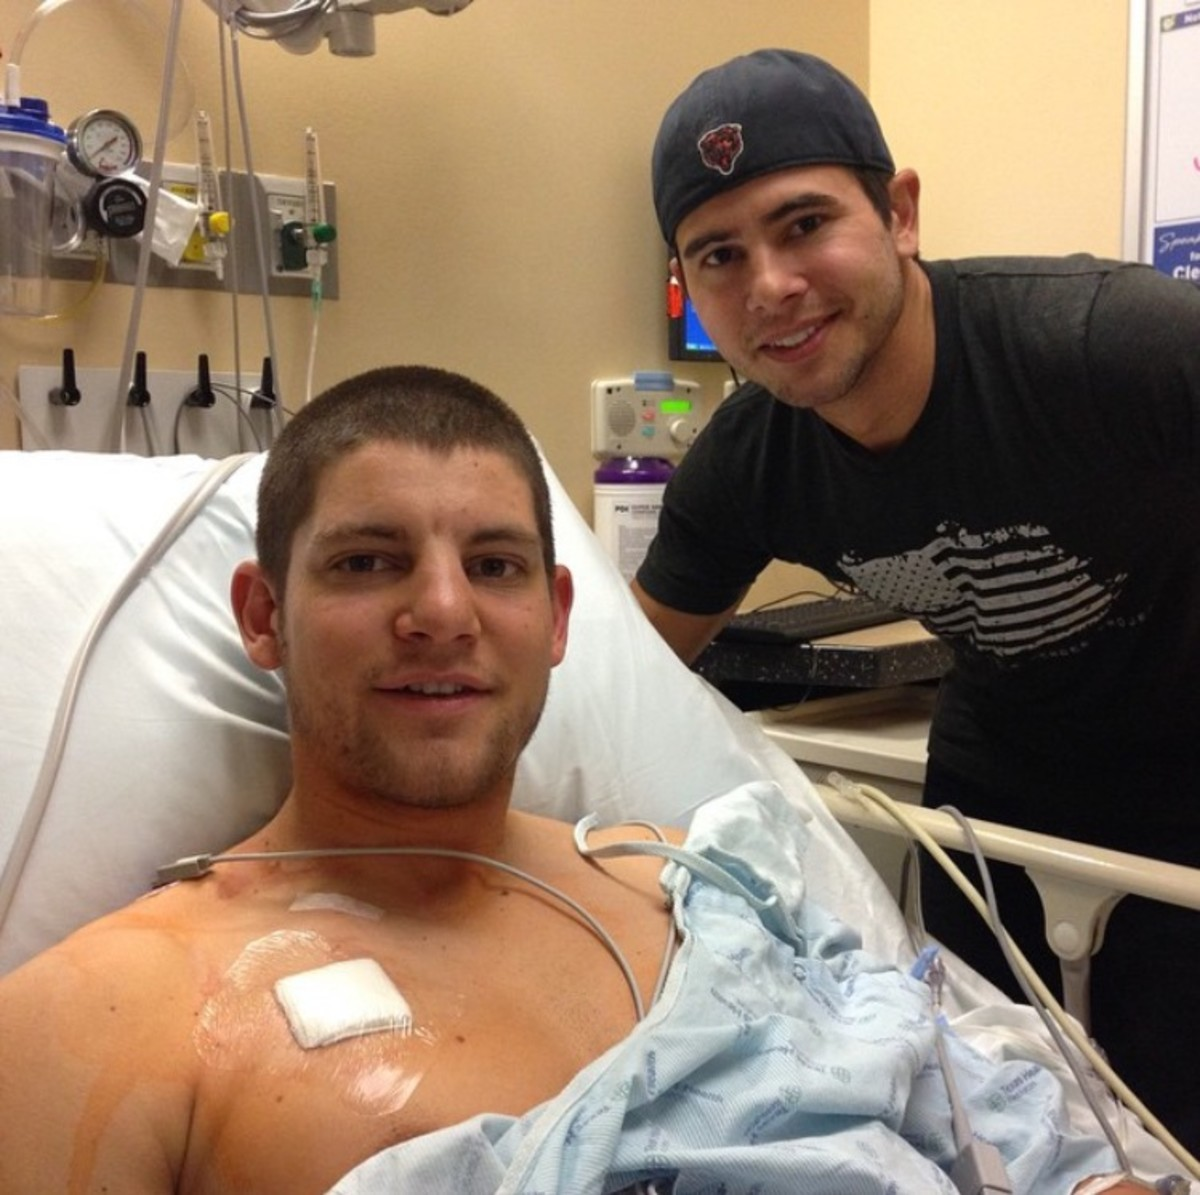 Mike with with our brother Jeff. This photo shows Mike's chemo port installed, fall 2014.